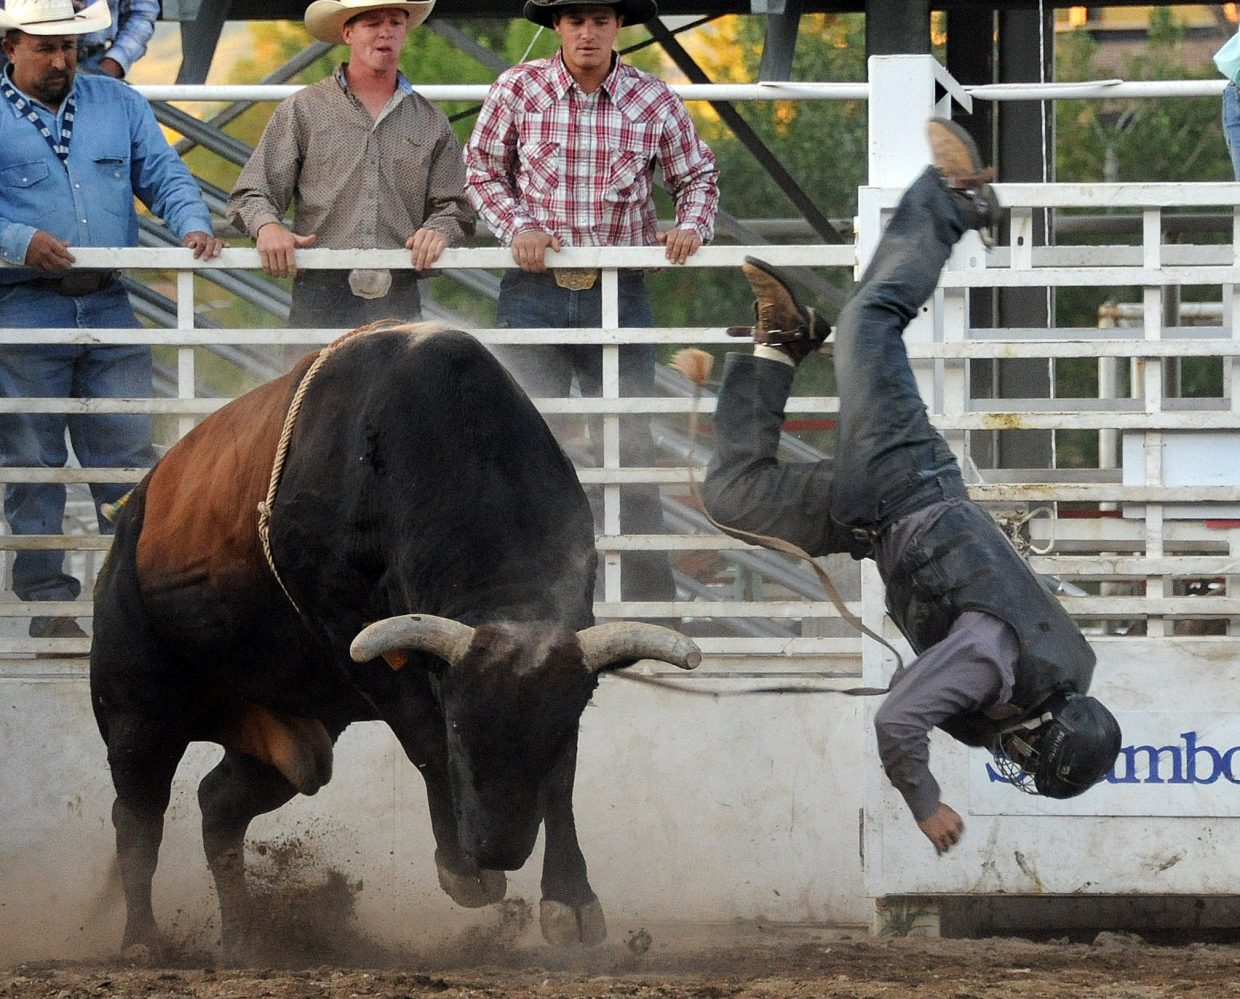 A bull wins a match with a rider Sunday at the Rocky Mountain Bull Bash in Steamboat Springs.